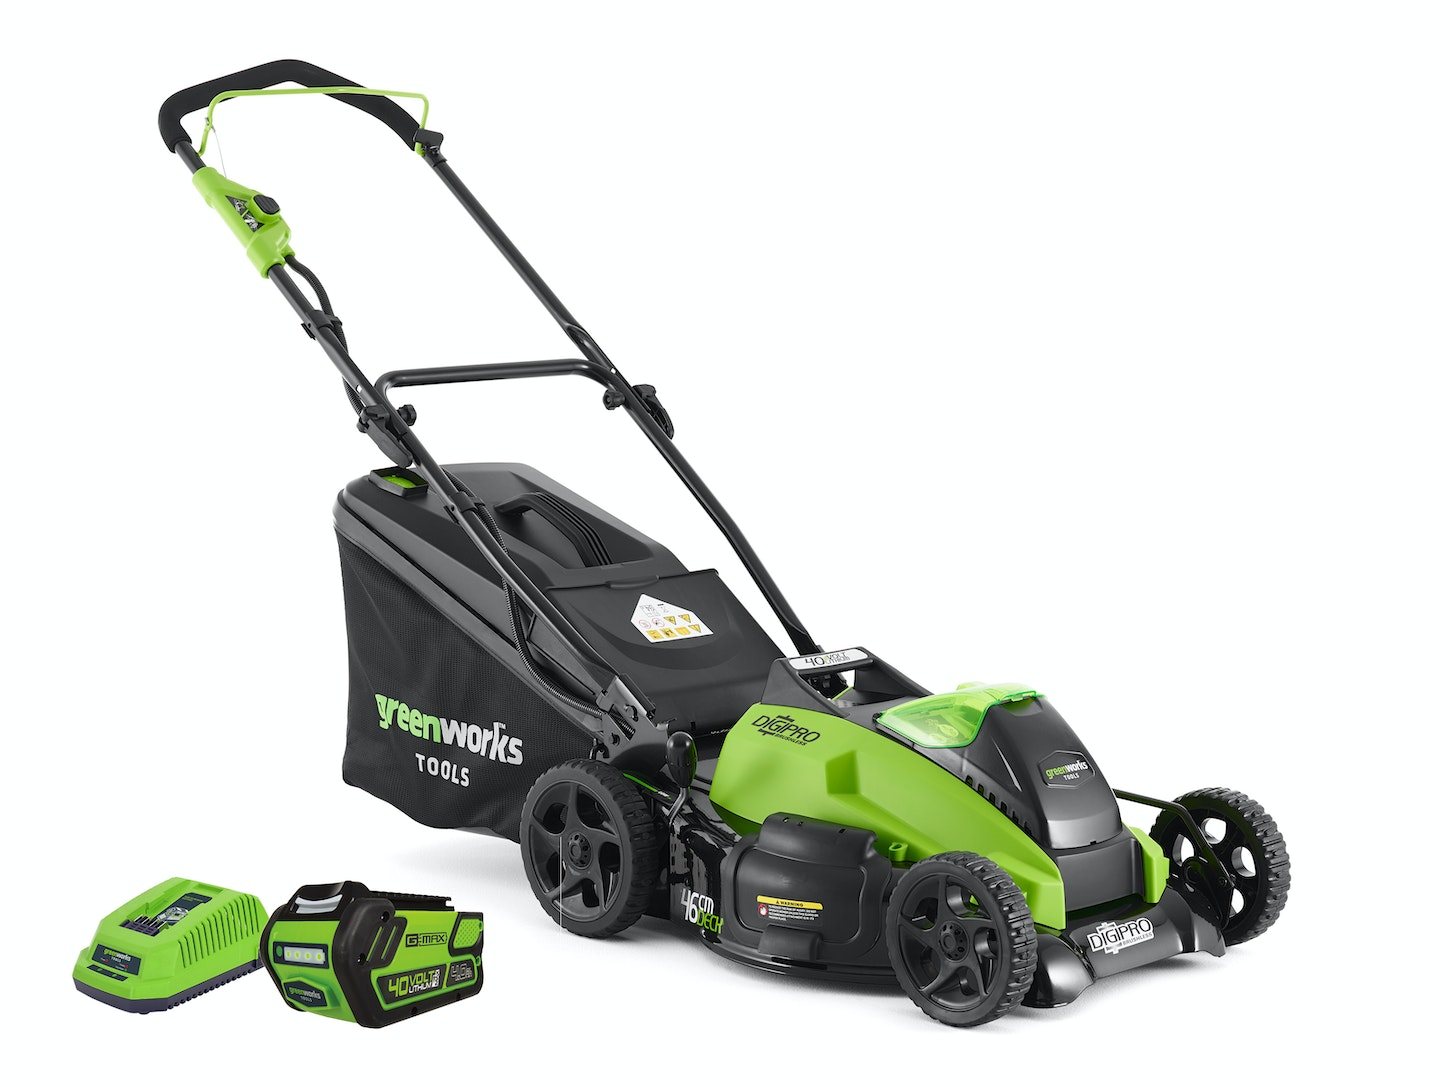 933c586a22a GreenWorks Lawnmower G-MAX 40V 460mm Brushless 4.0Ah Kit - Lawnmowers -  Outdoor Power Equipment - Gardening Trade Tested